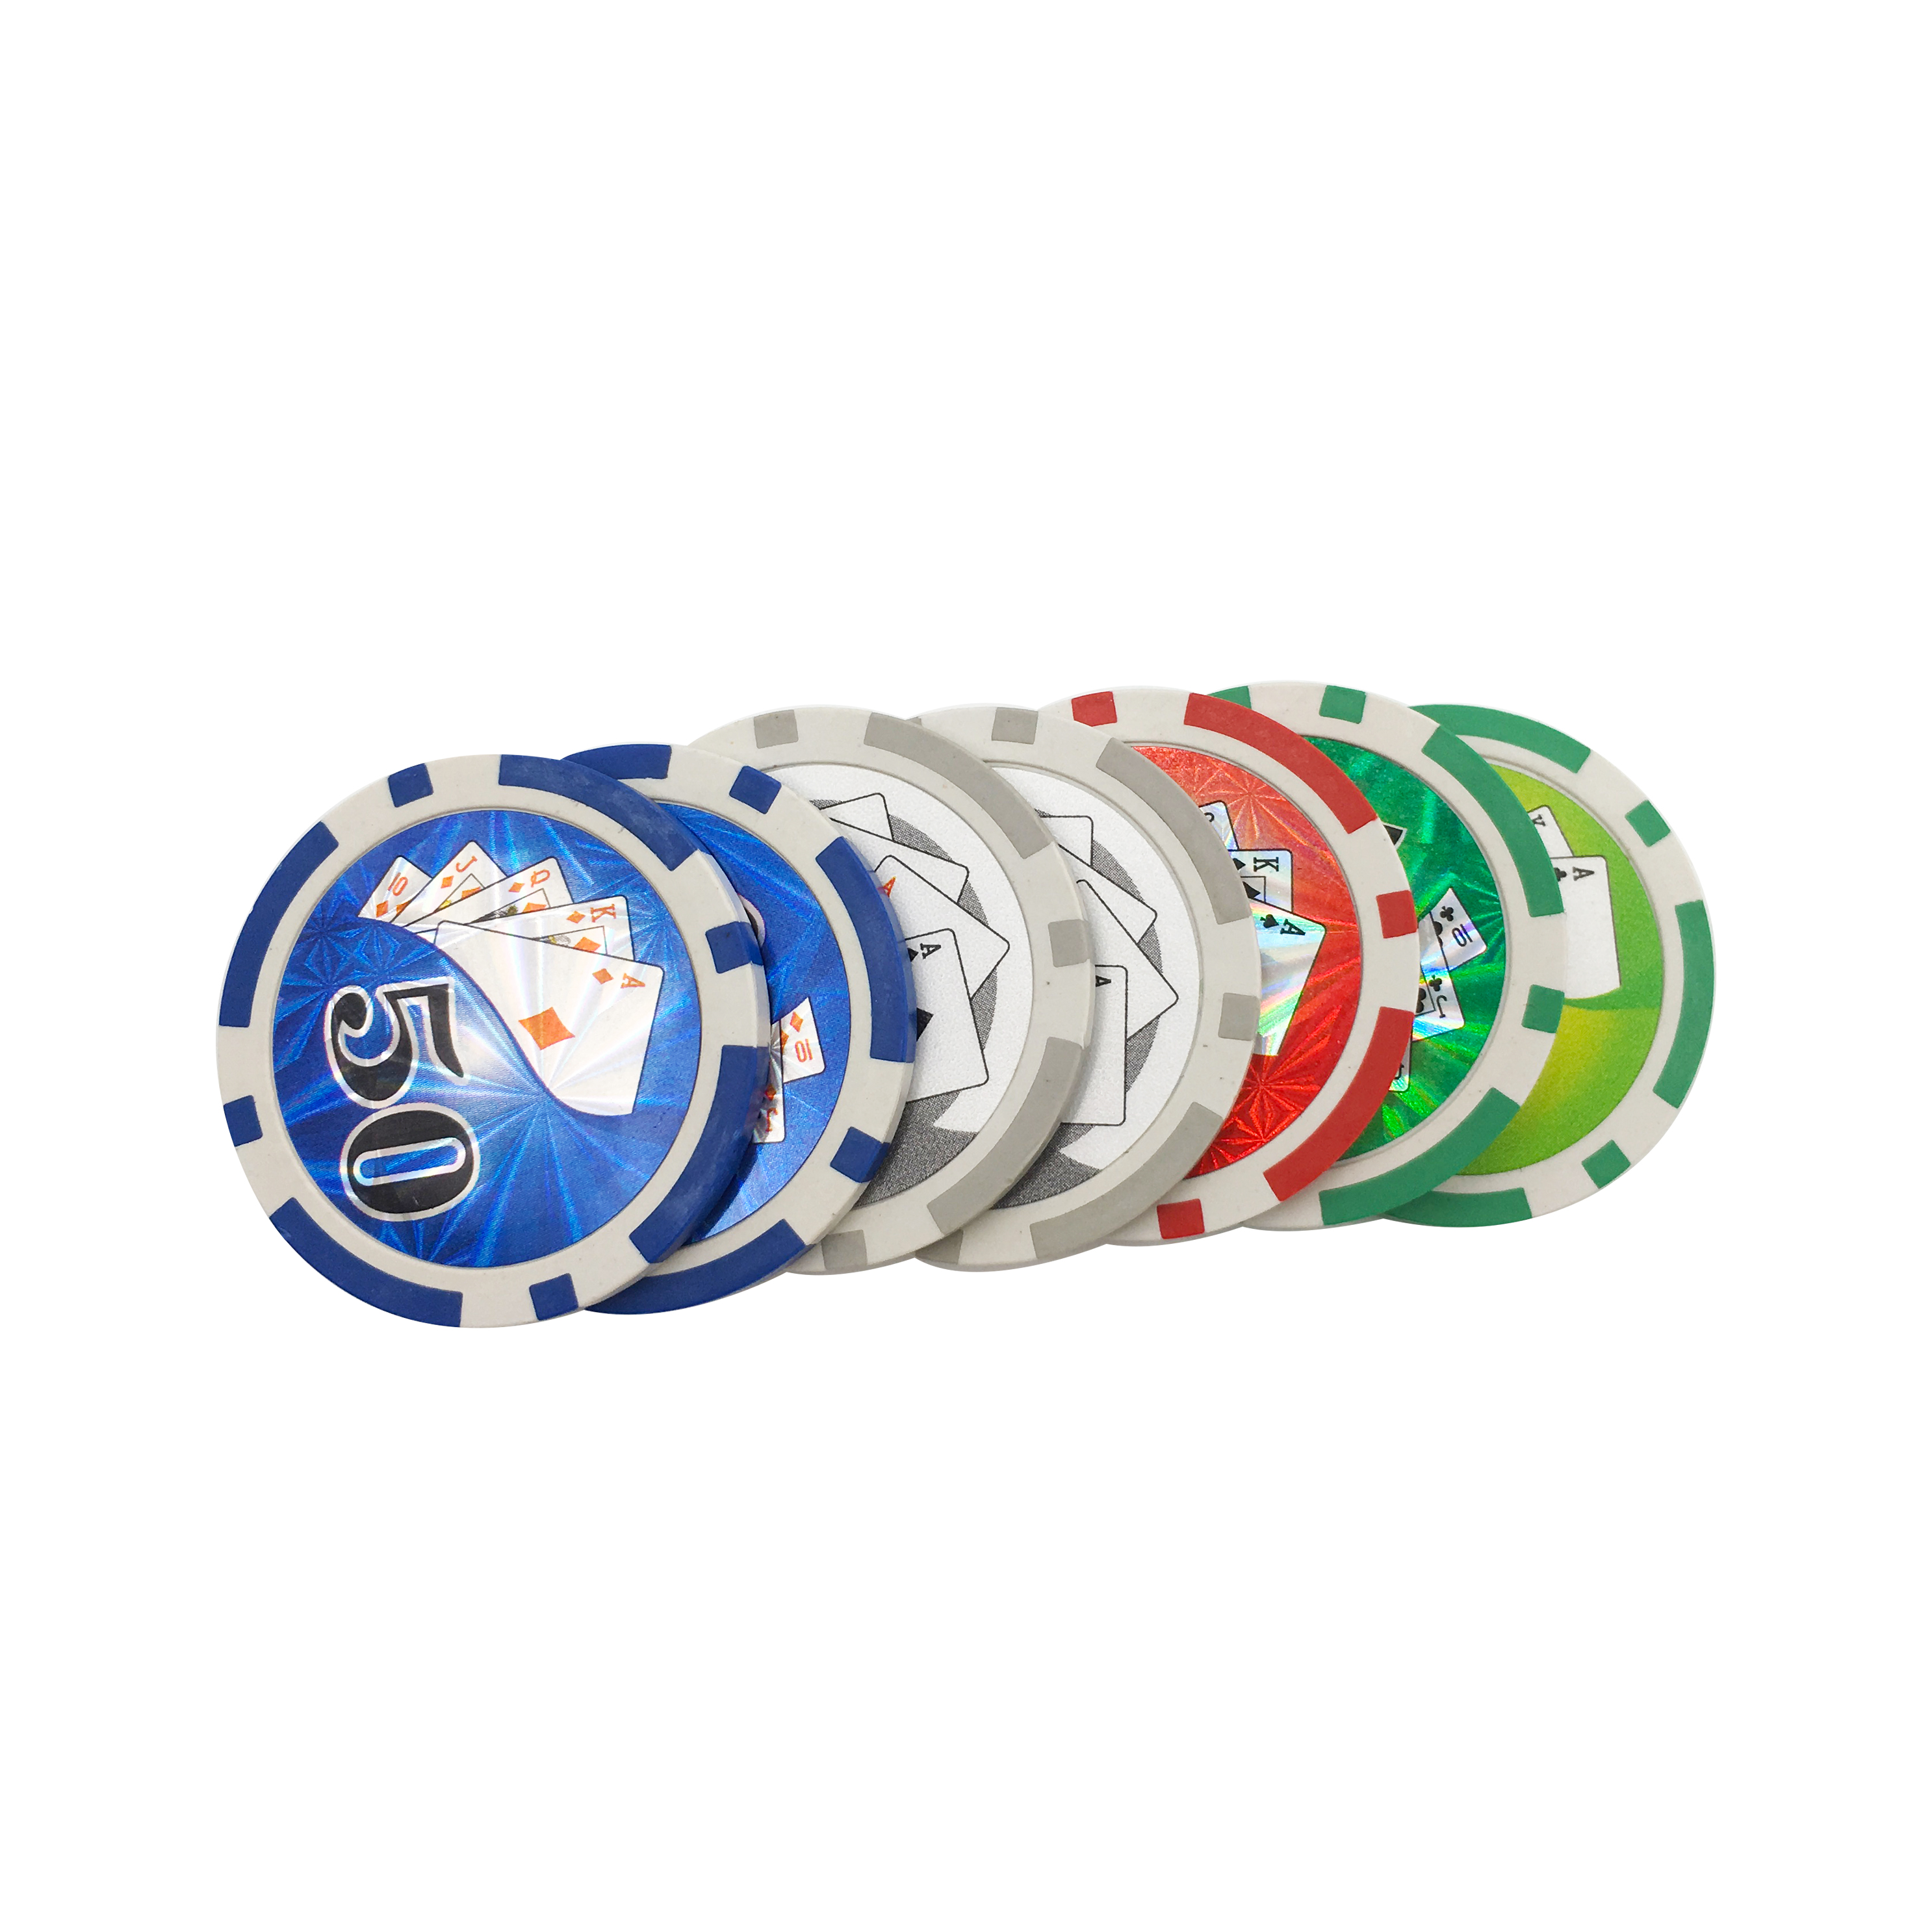 Casino poker chips with custom logo